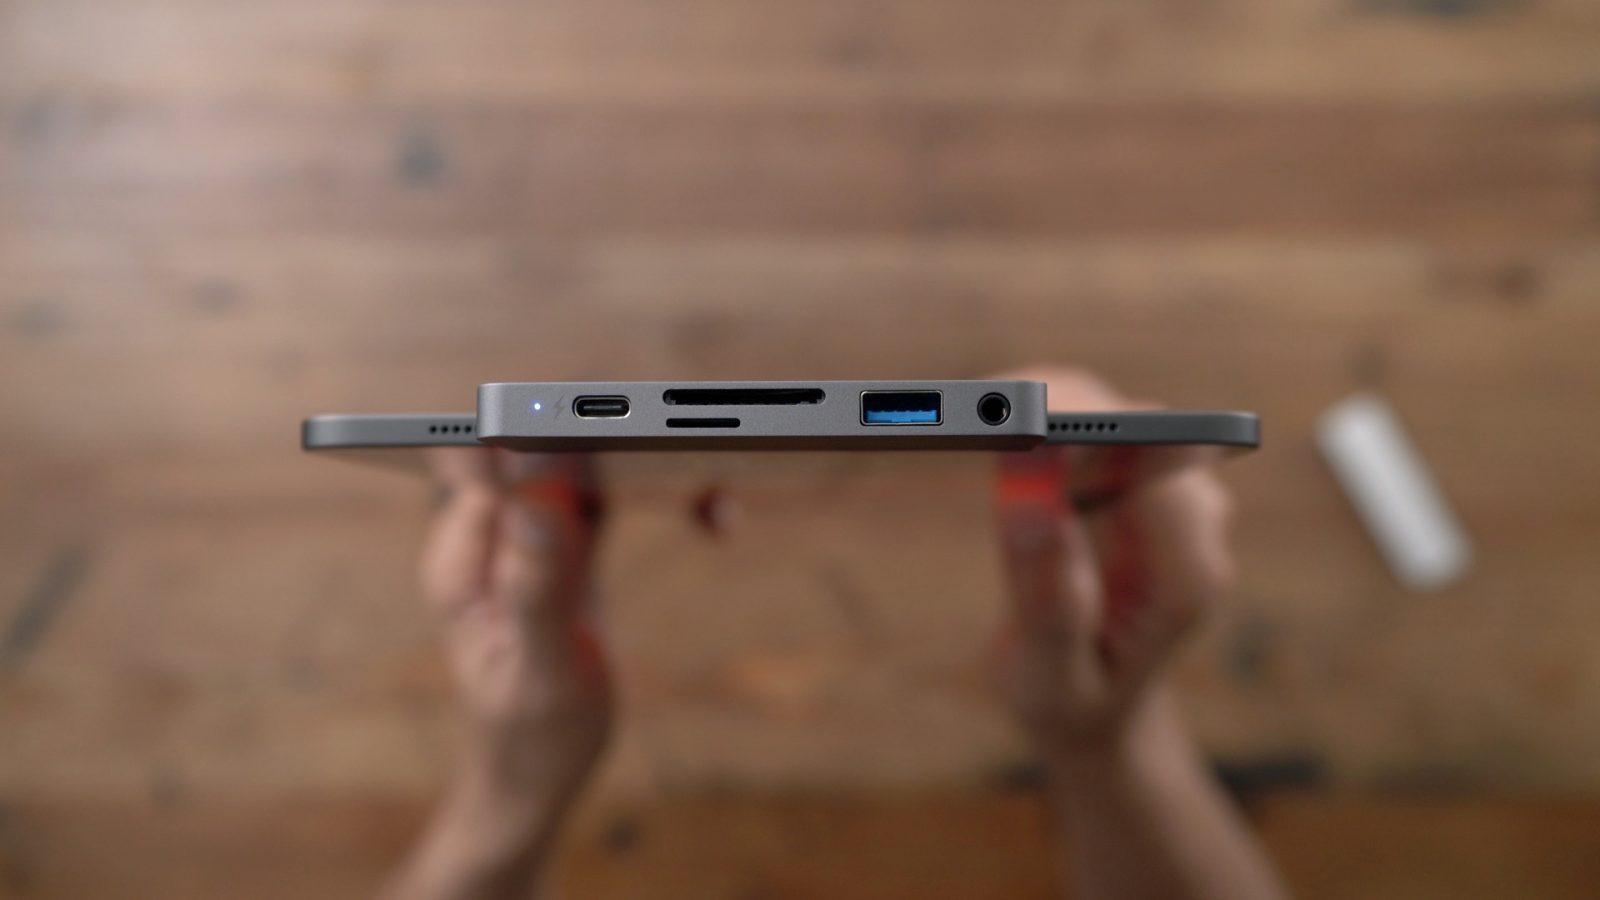 First look: HyperDrive USB-C Hub for 2018 iPad Pro [Video